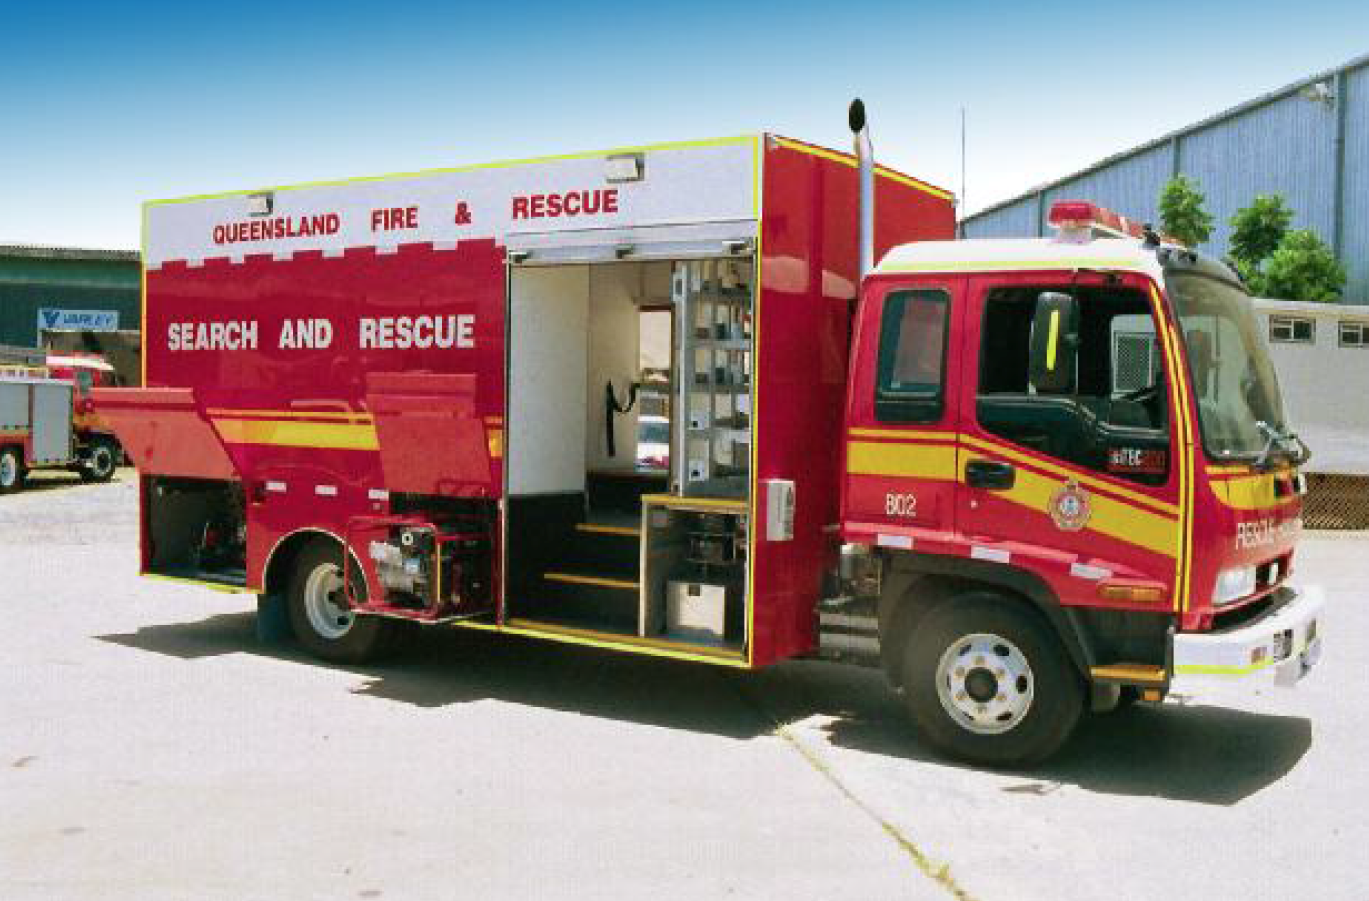 Search and rescue truck